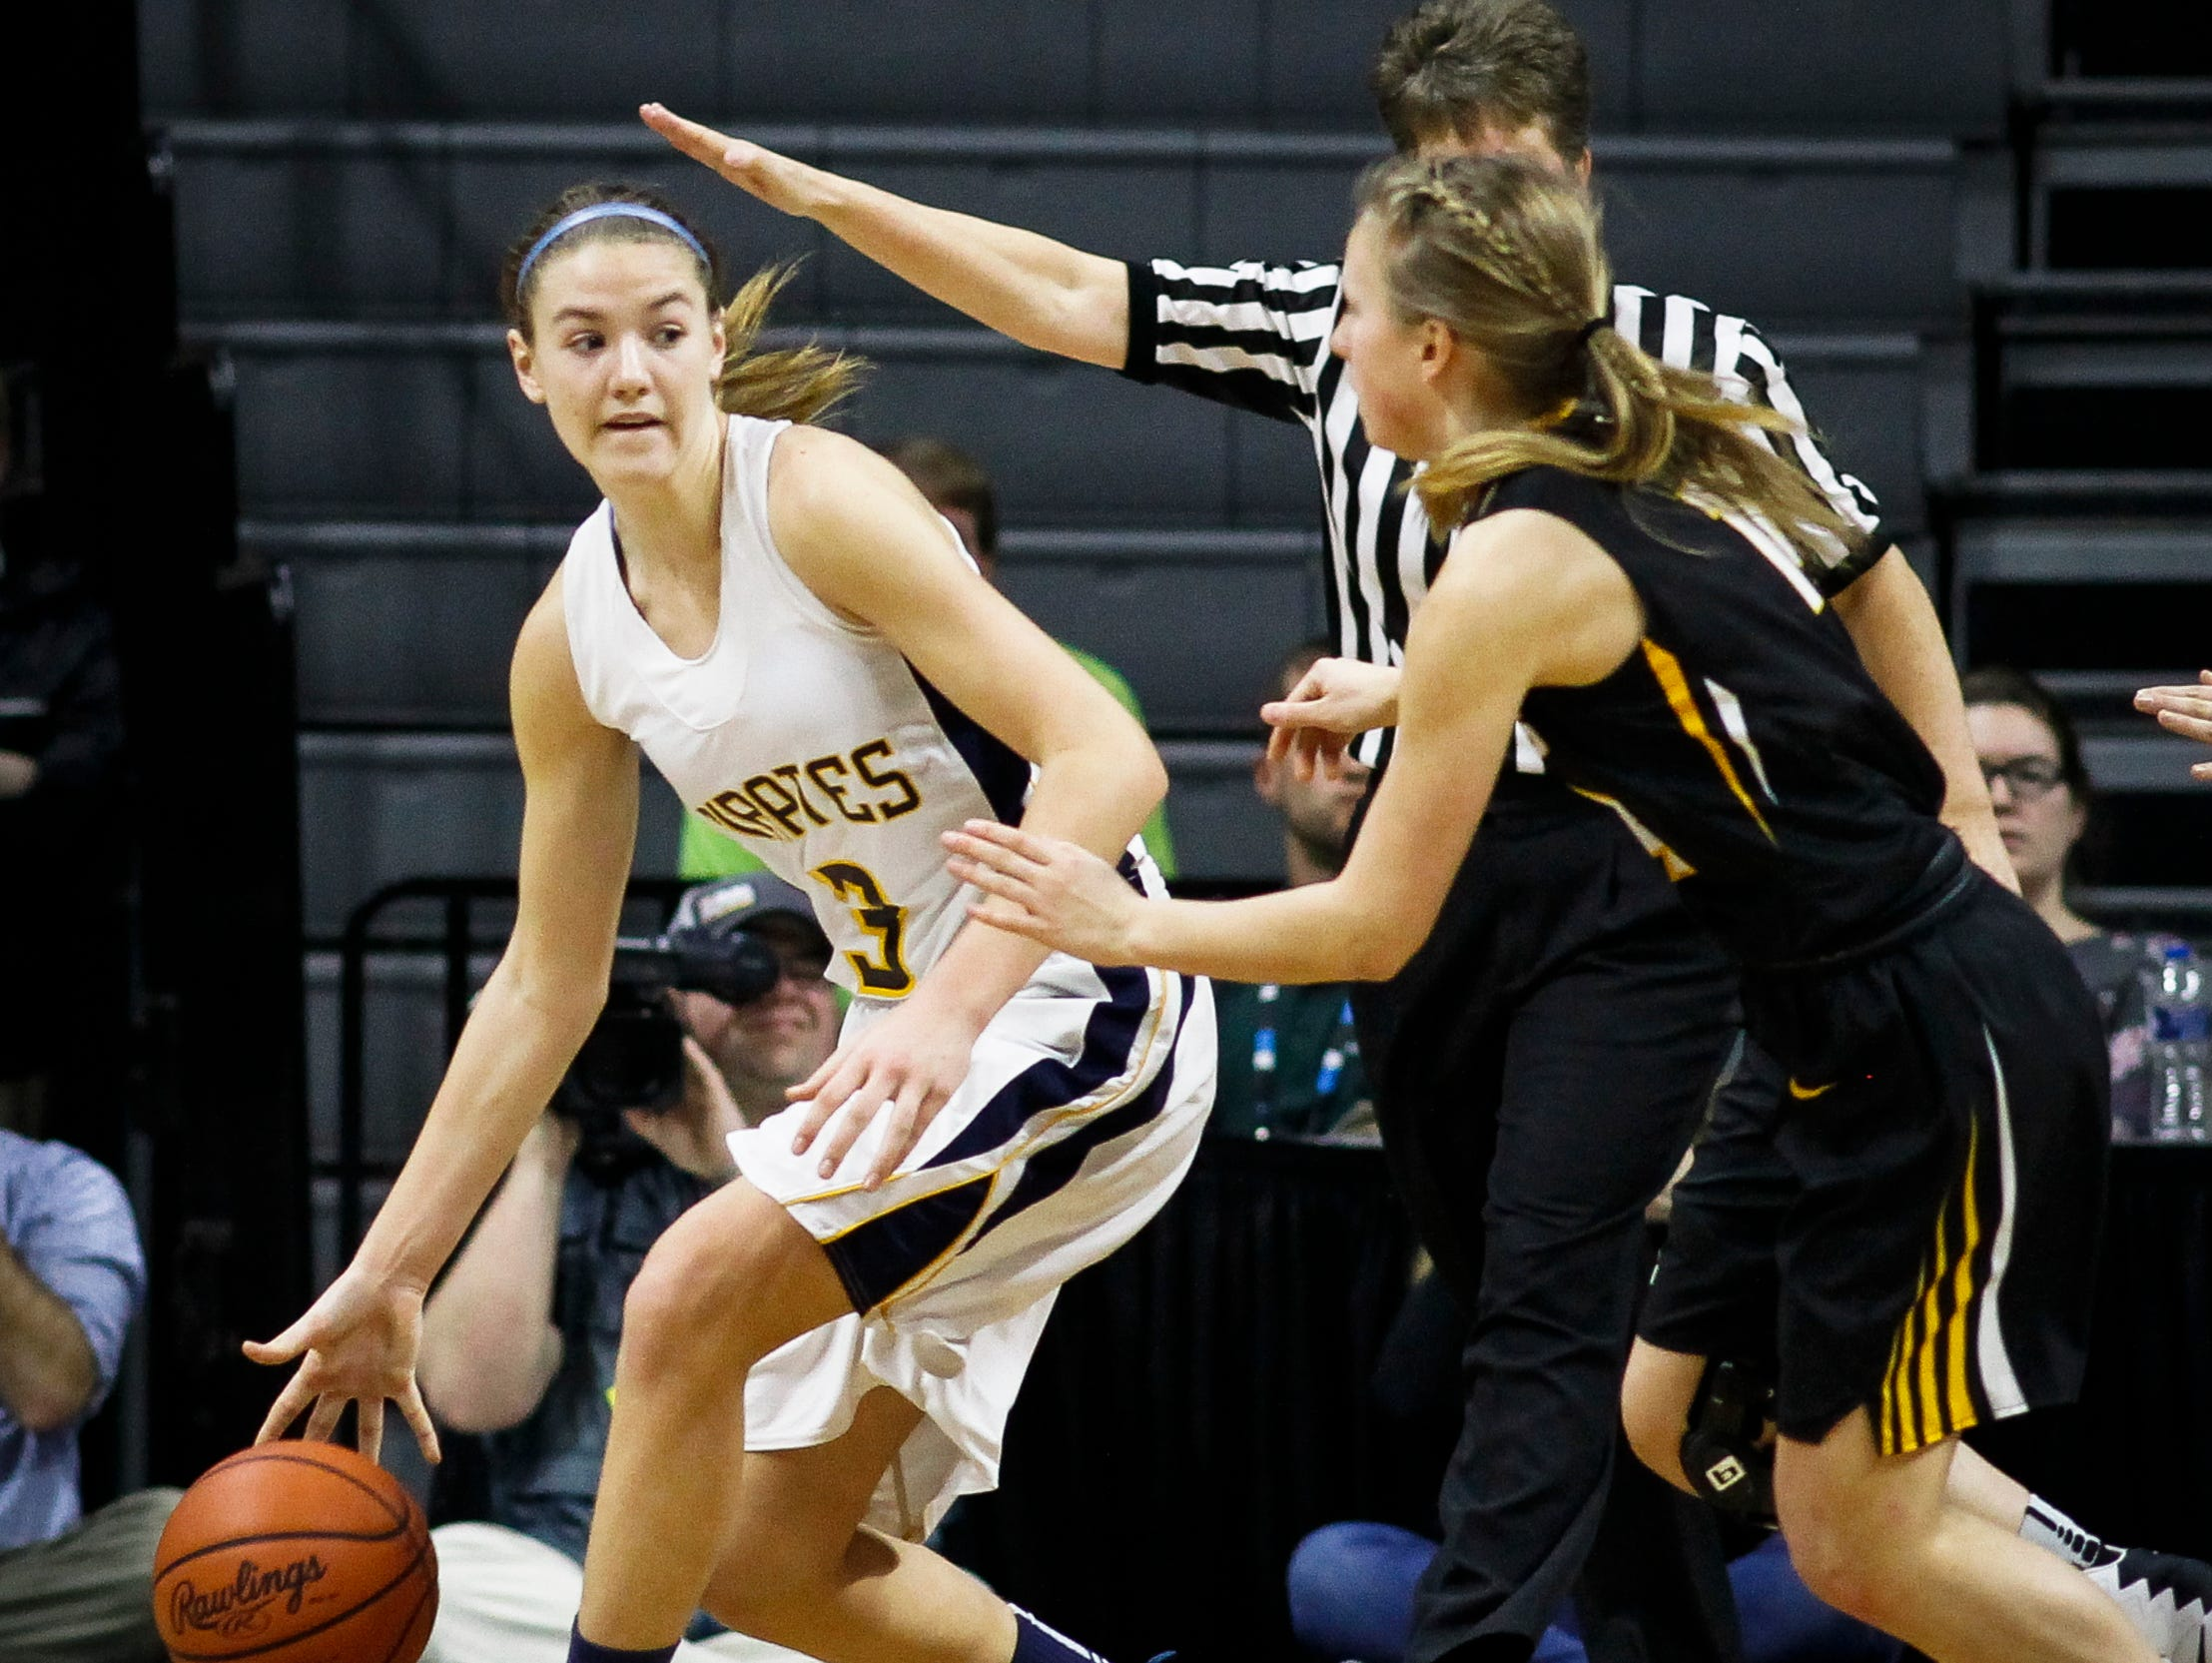 P-W's Hannah Spitzley staves off the Maple City Glen Lake defense Thursday, March 16, 2017, during the Class B Semifinal at the Breslin in East Lansing. P-W won 64-51.